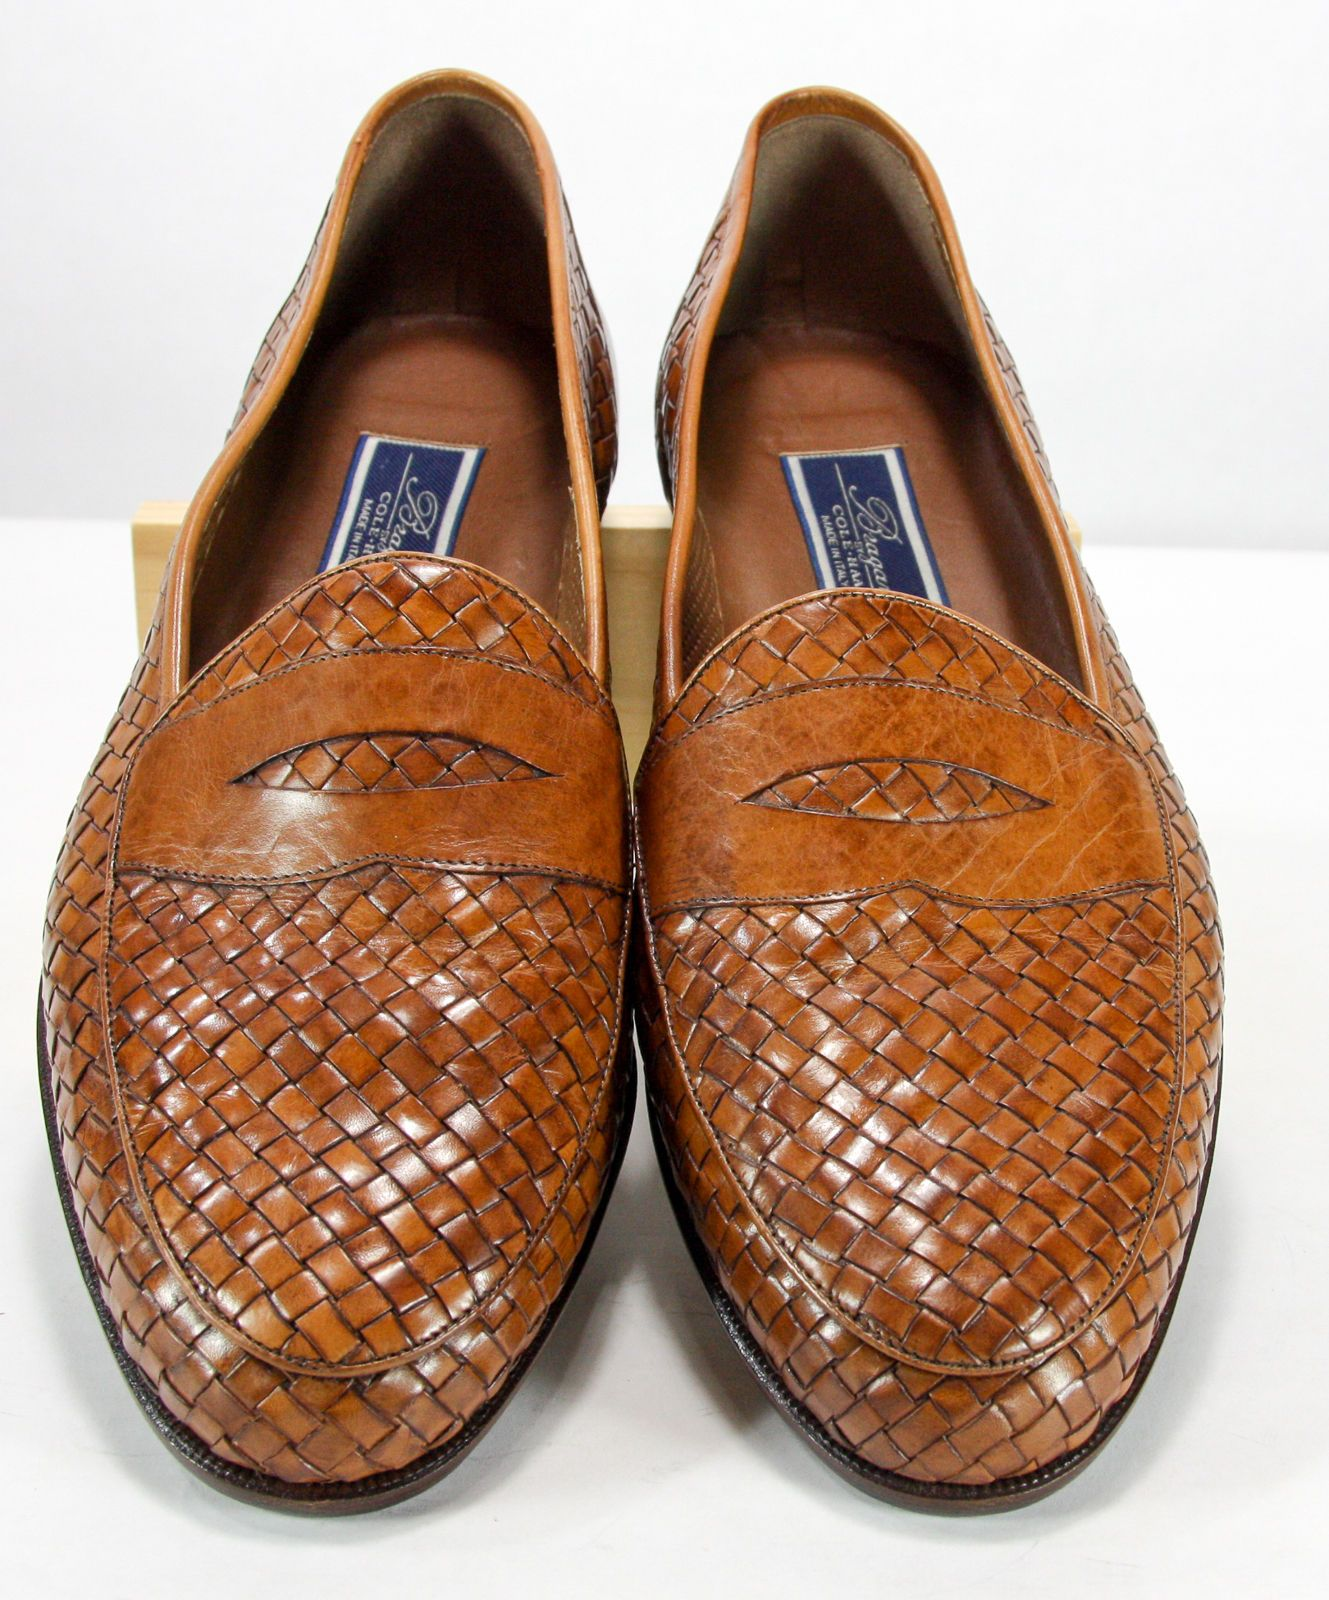 Brown Woven Leather Loafer Dress Shoes